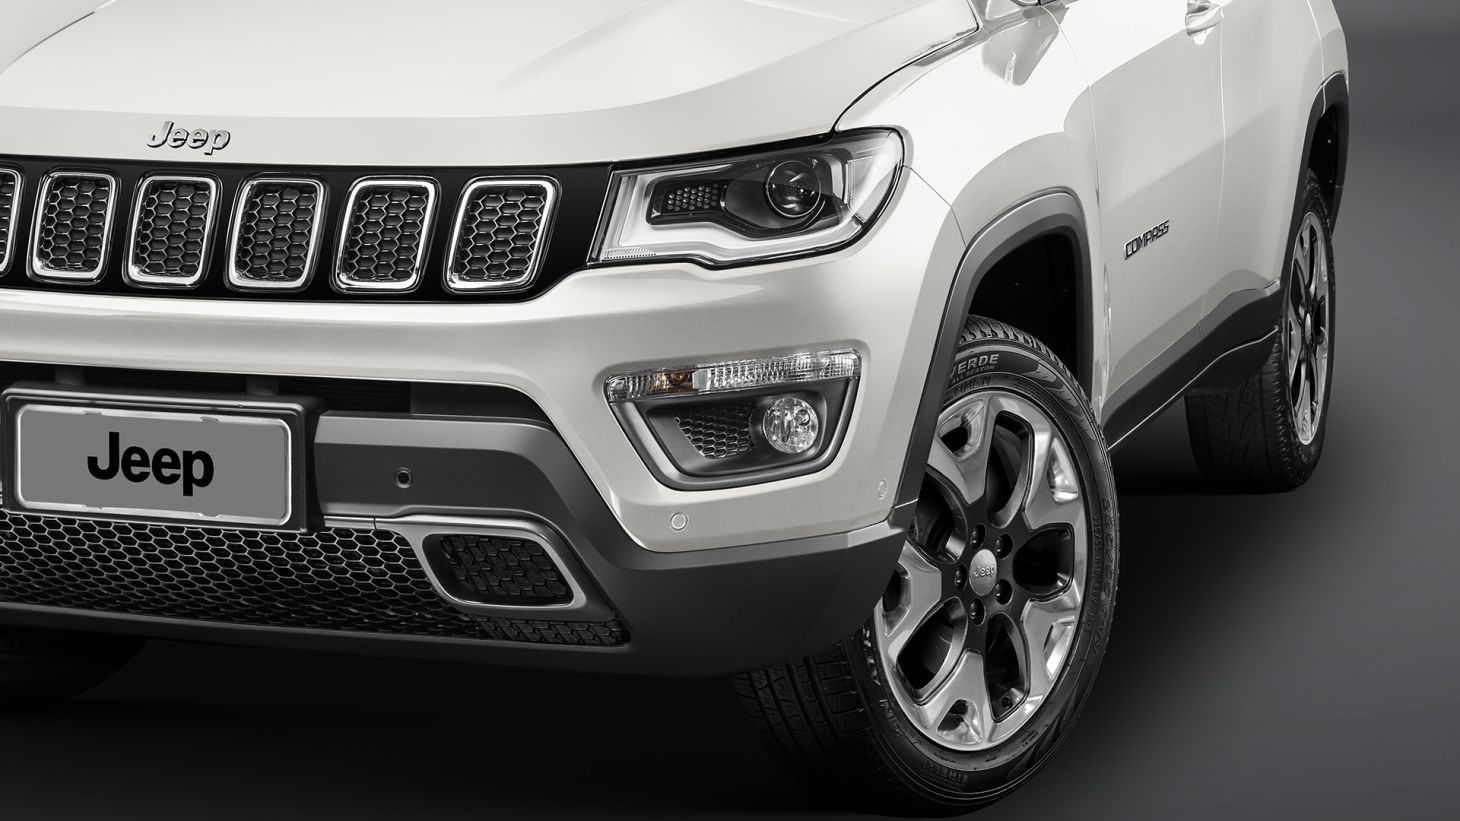 Rodas de liga leve do Jeep Compass